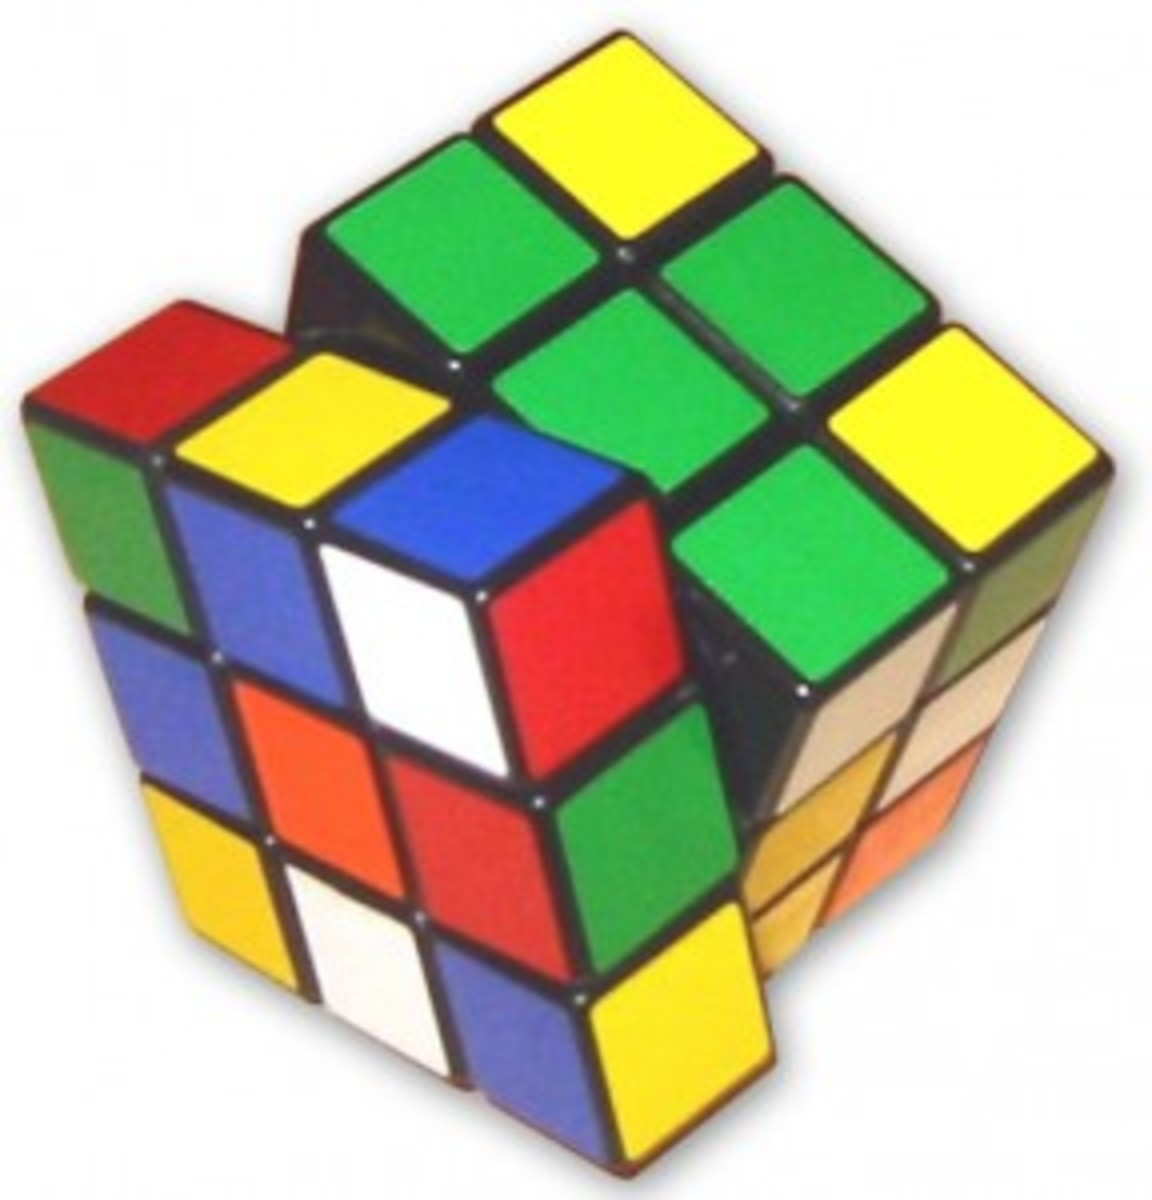 Rewrites - Spin the cube to see new possibilities.